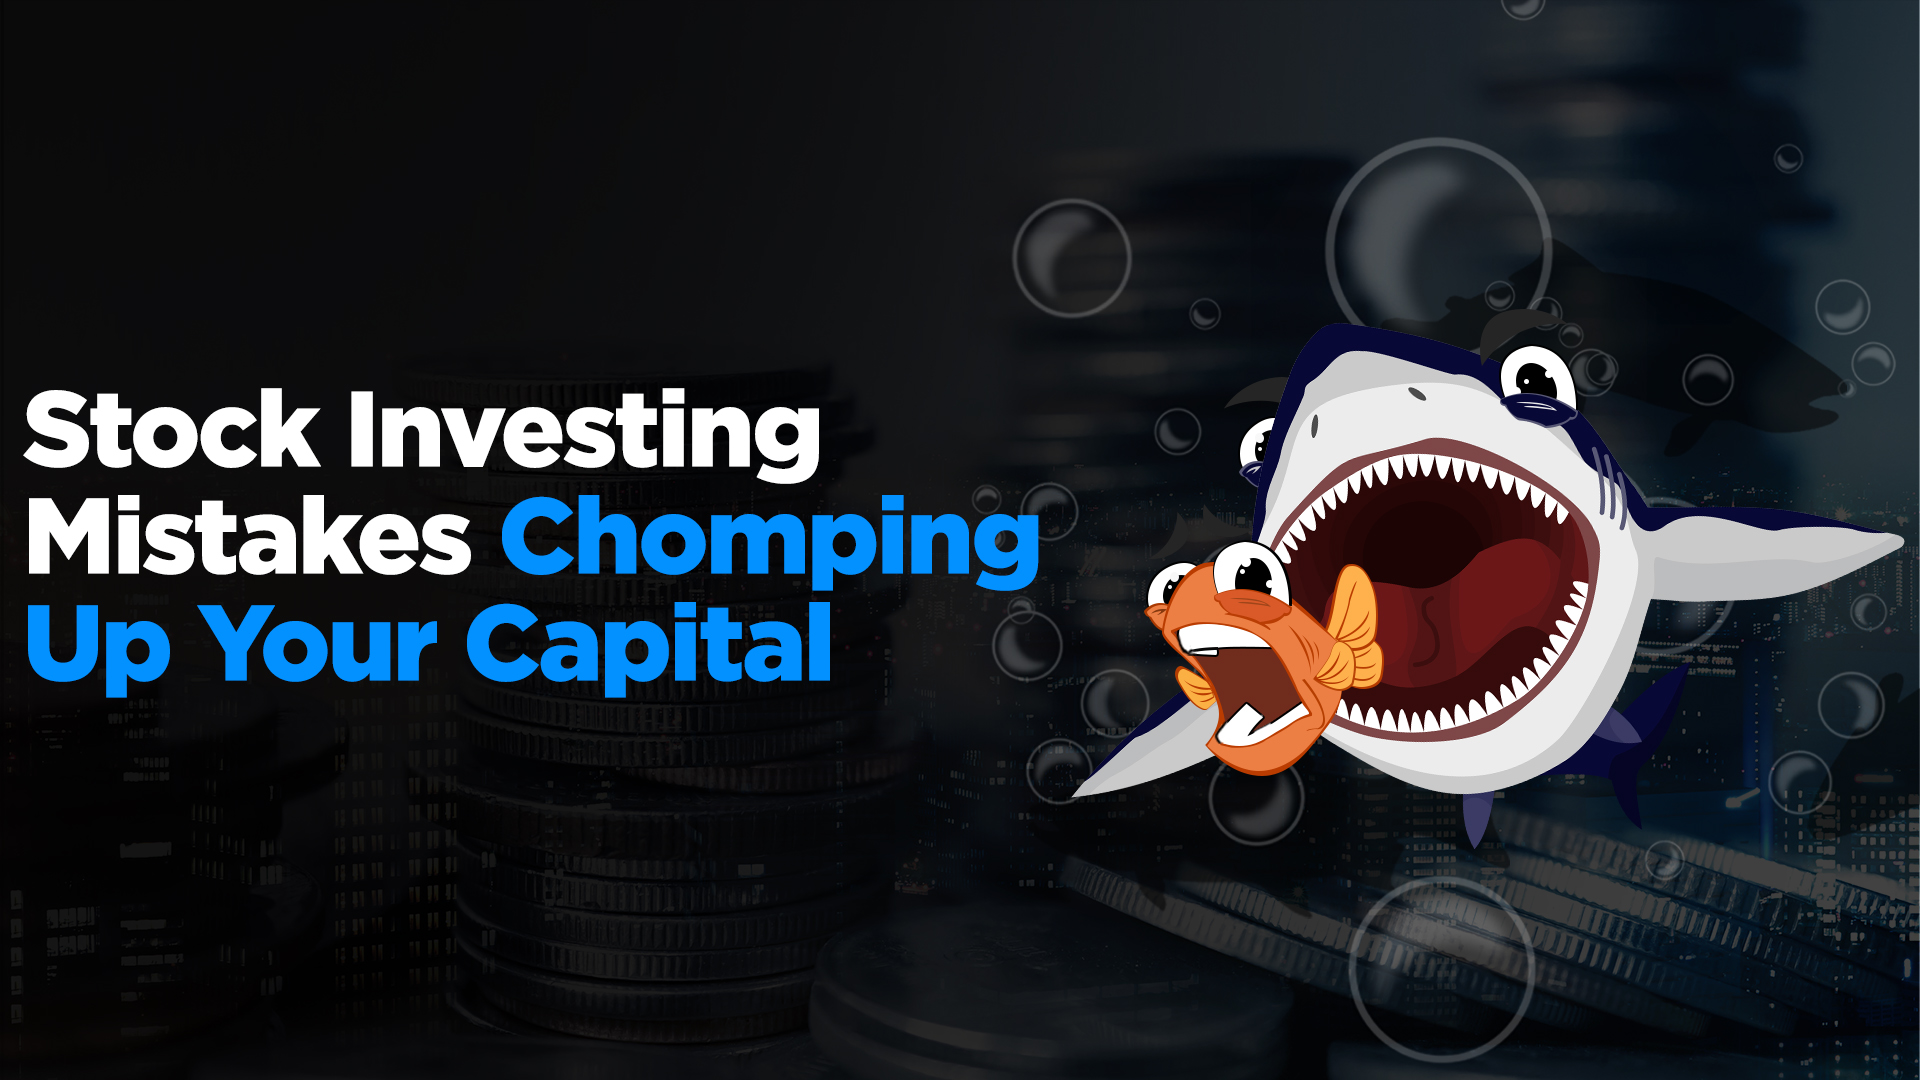 4 Stock Investing Mistakes Burning Your Capital (And How To Fix Them)